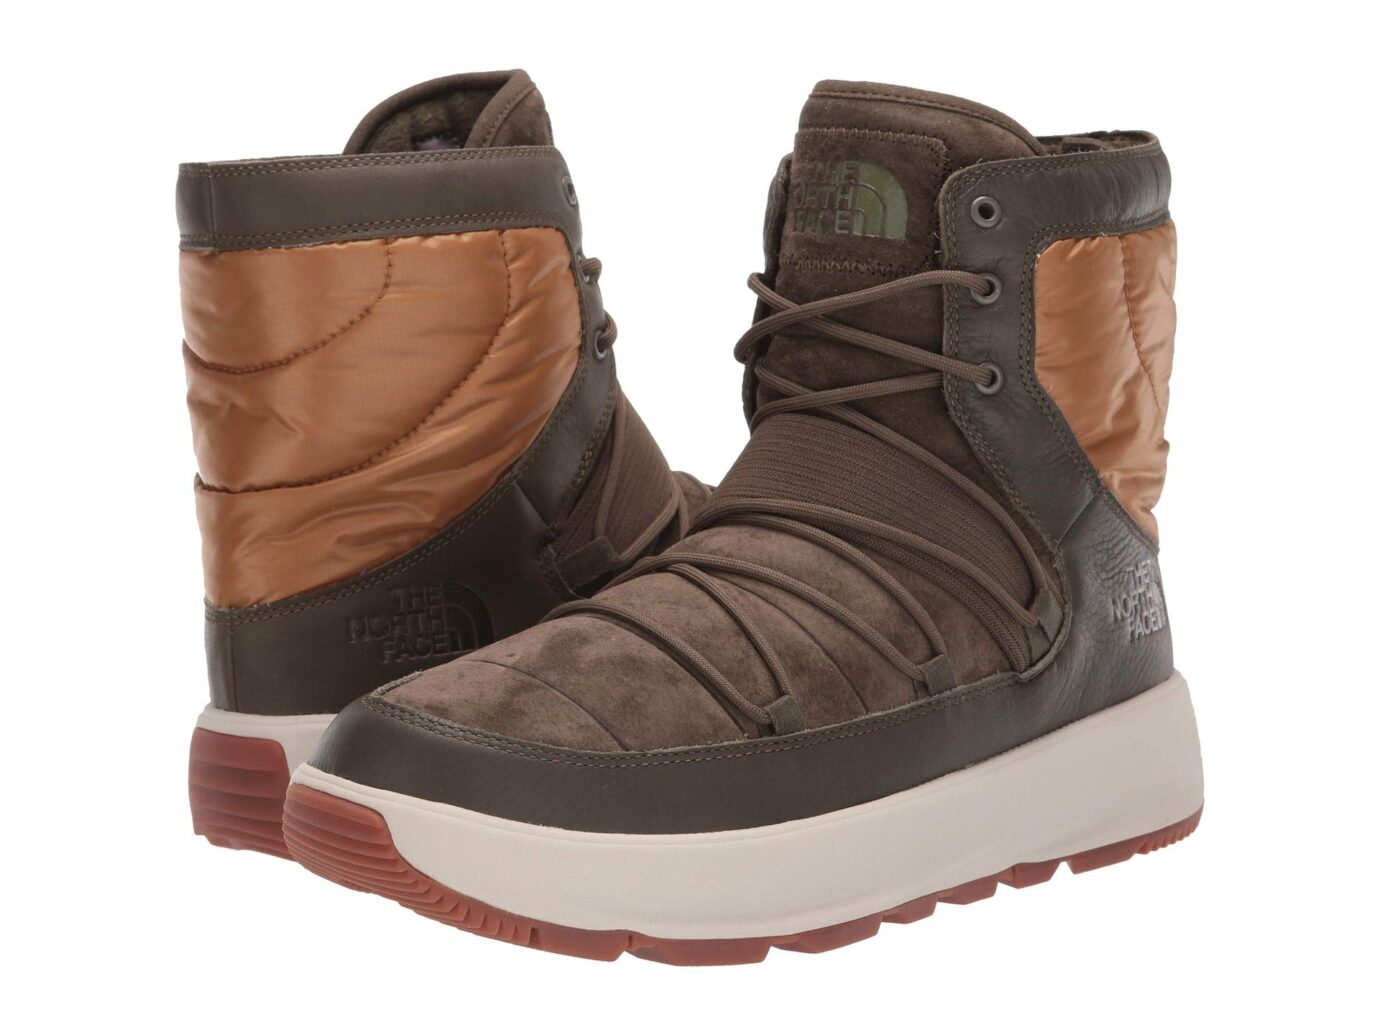 The North Face Ozone Park Winter Boot